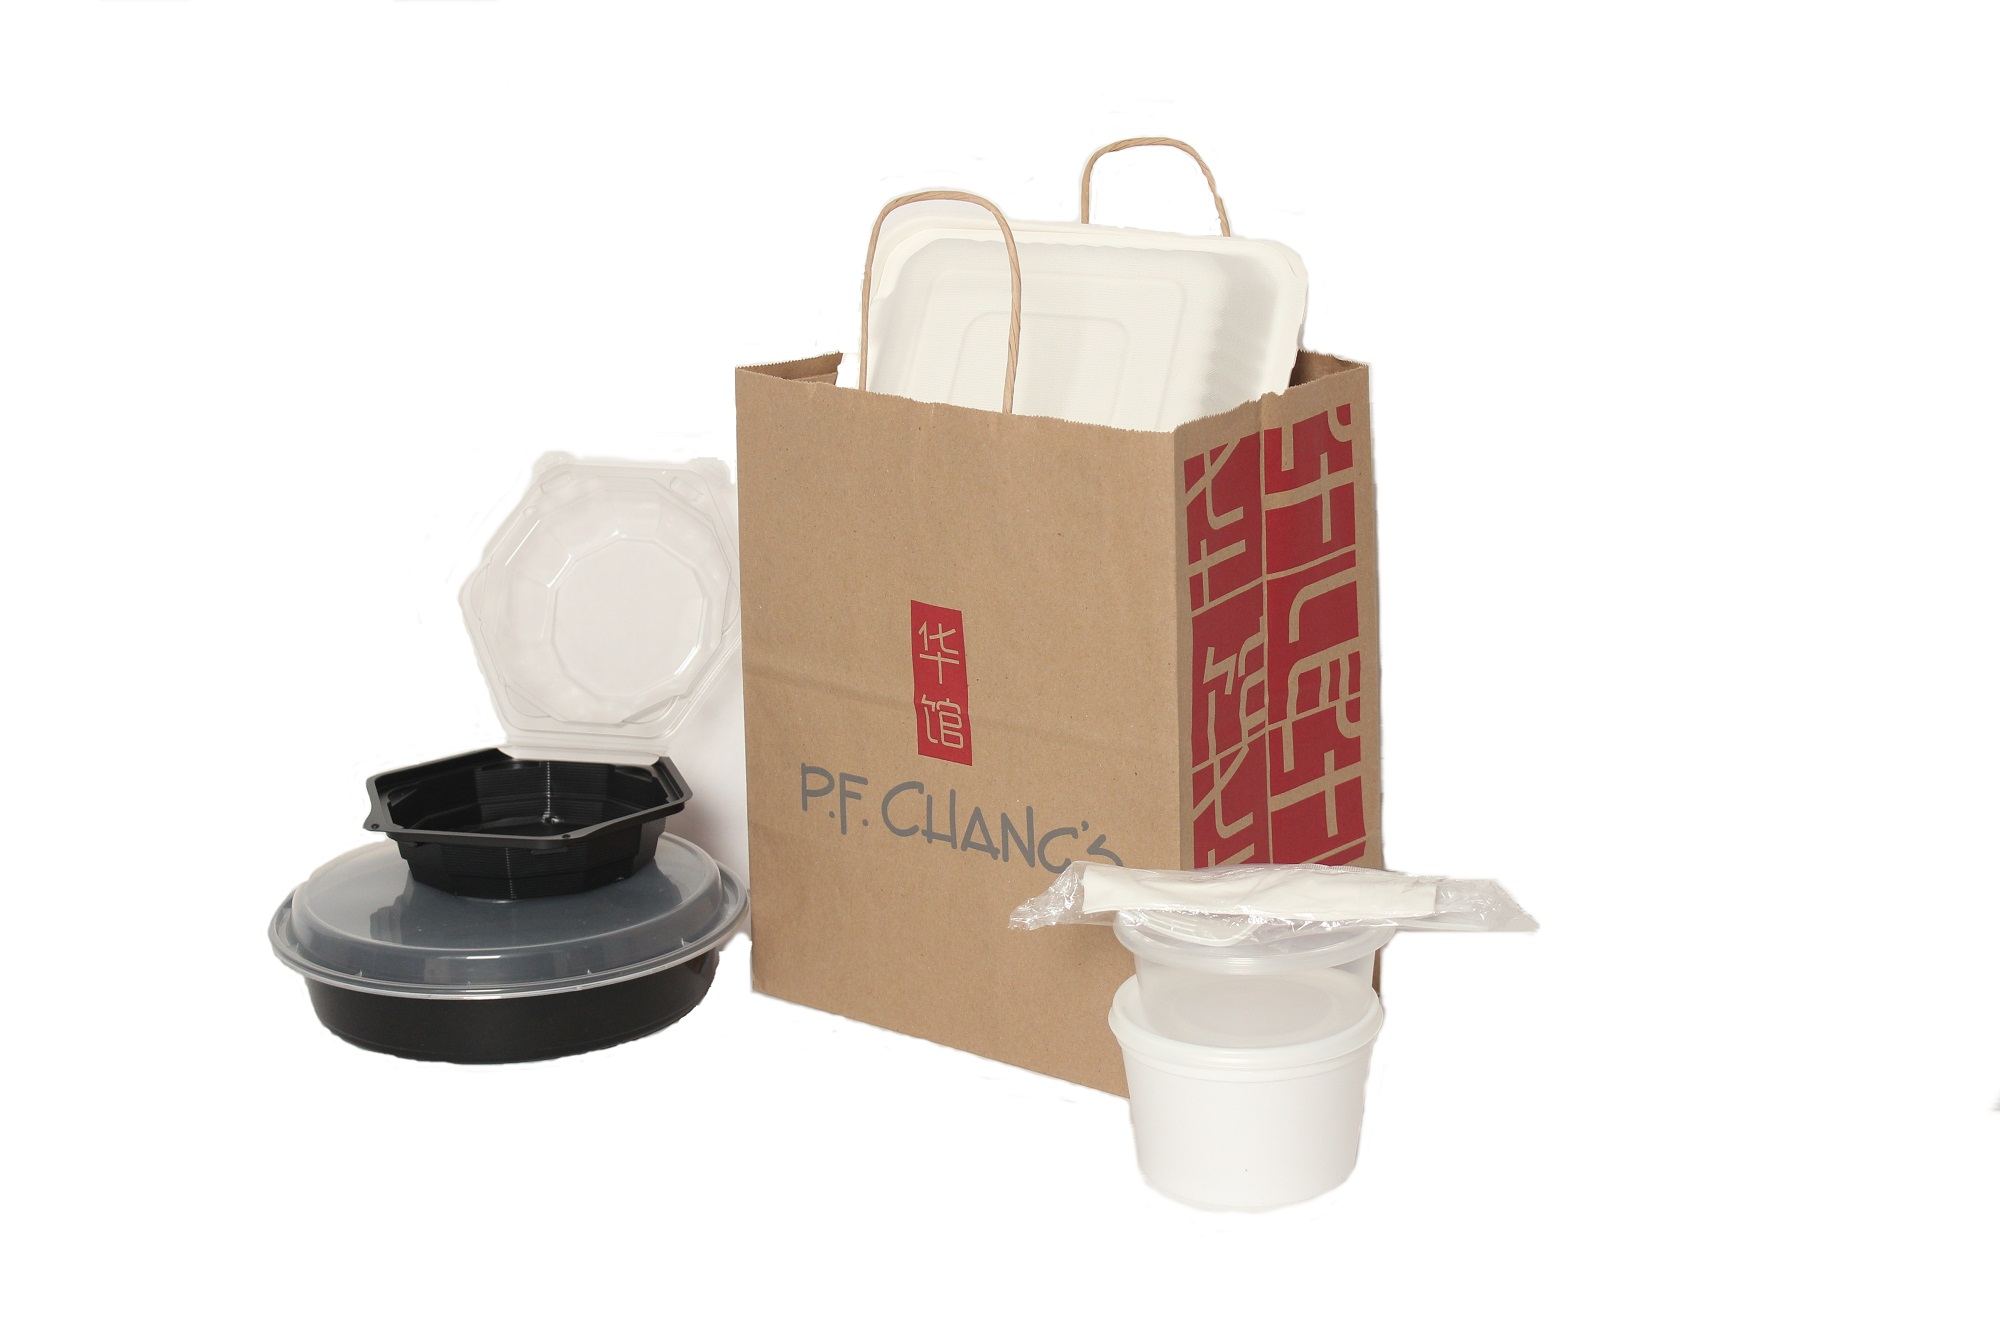 Take Out Bags - Home Page